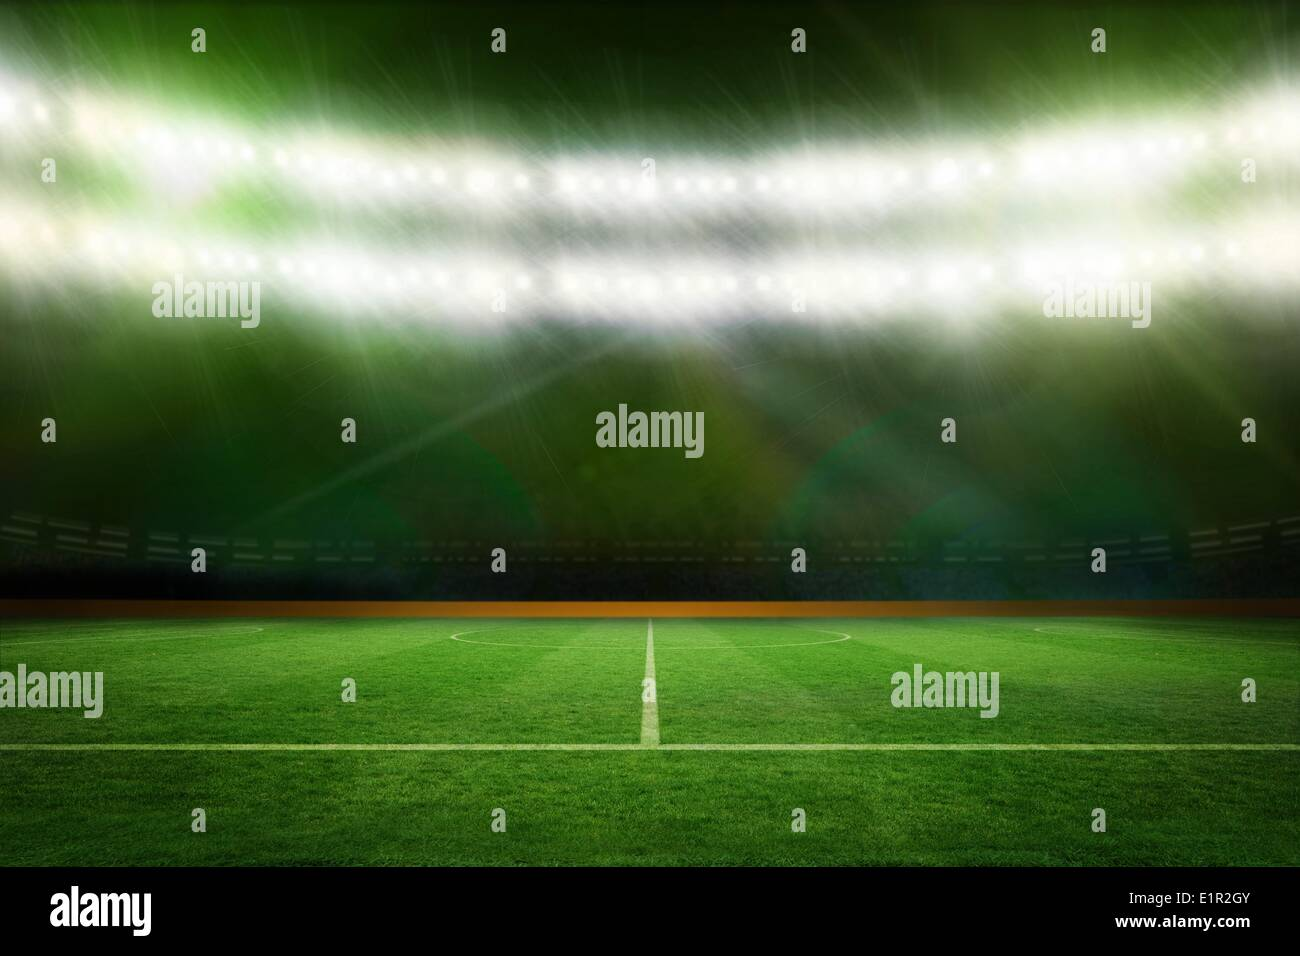 Football pitch under green lights - Stock Image